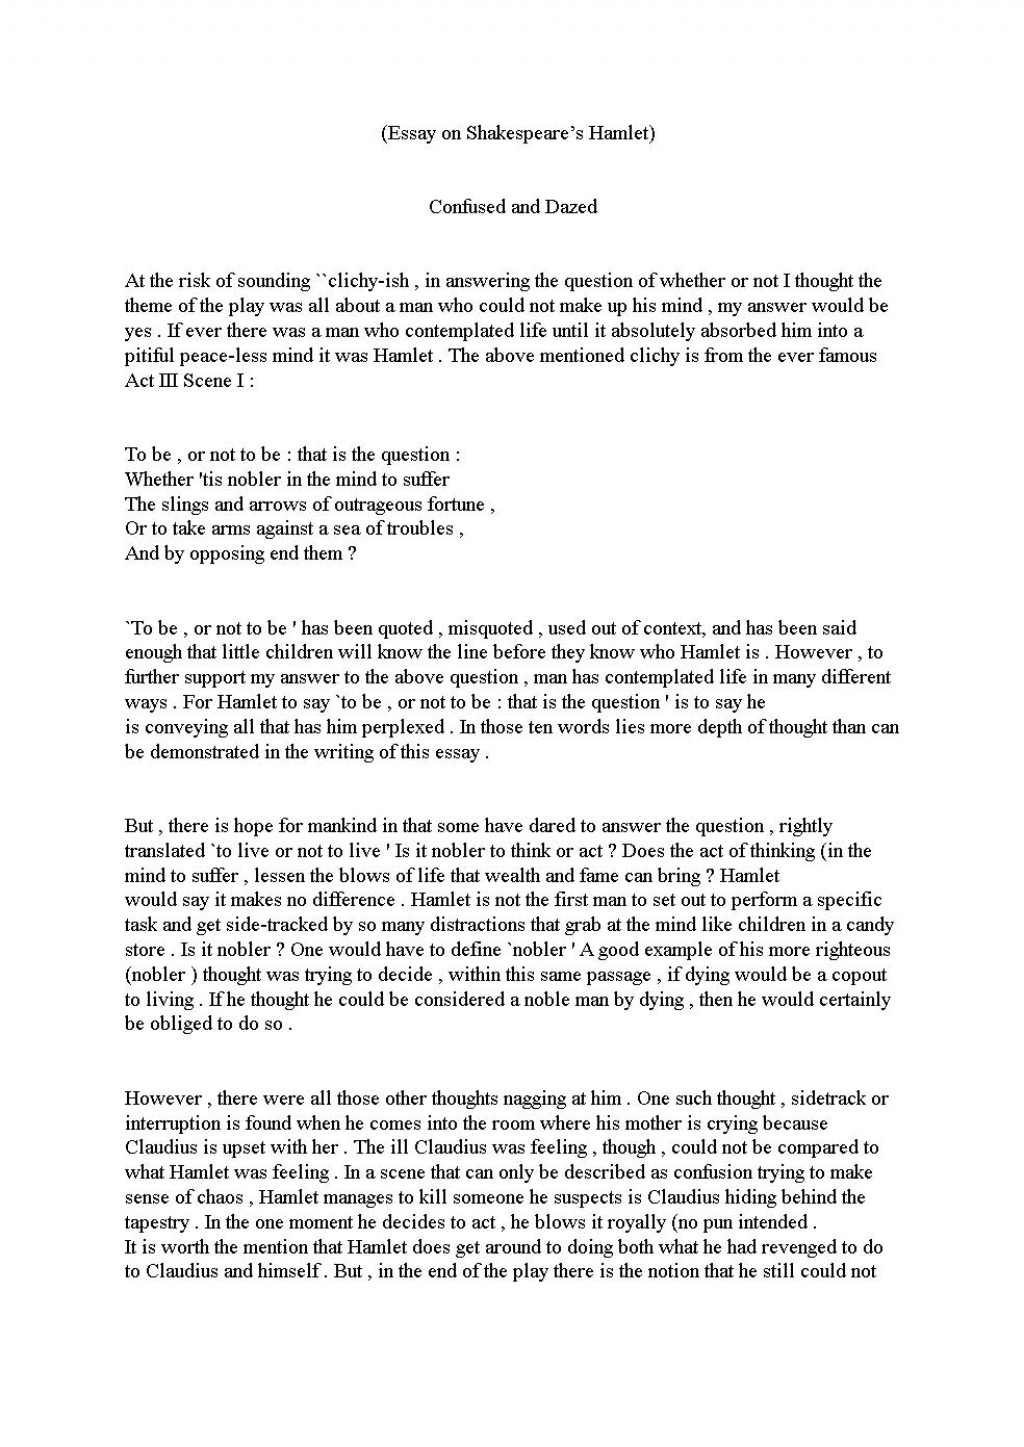 005 Drama Essay Sample Example Rome Was Not Built In Day Magnificent A Short Large